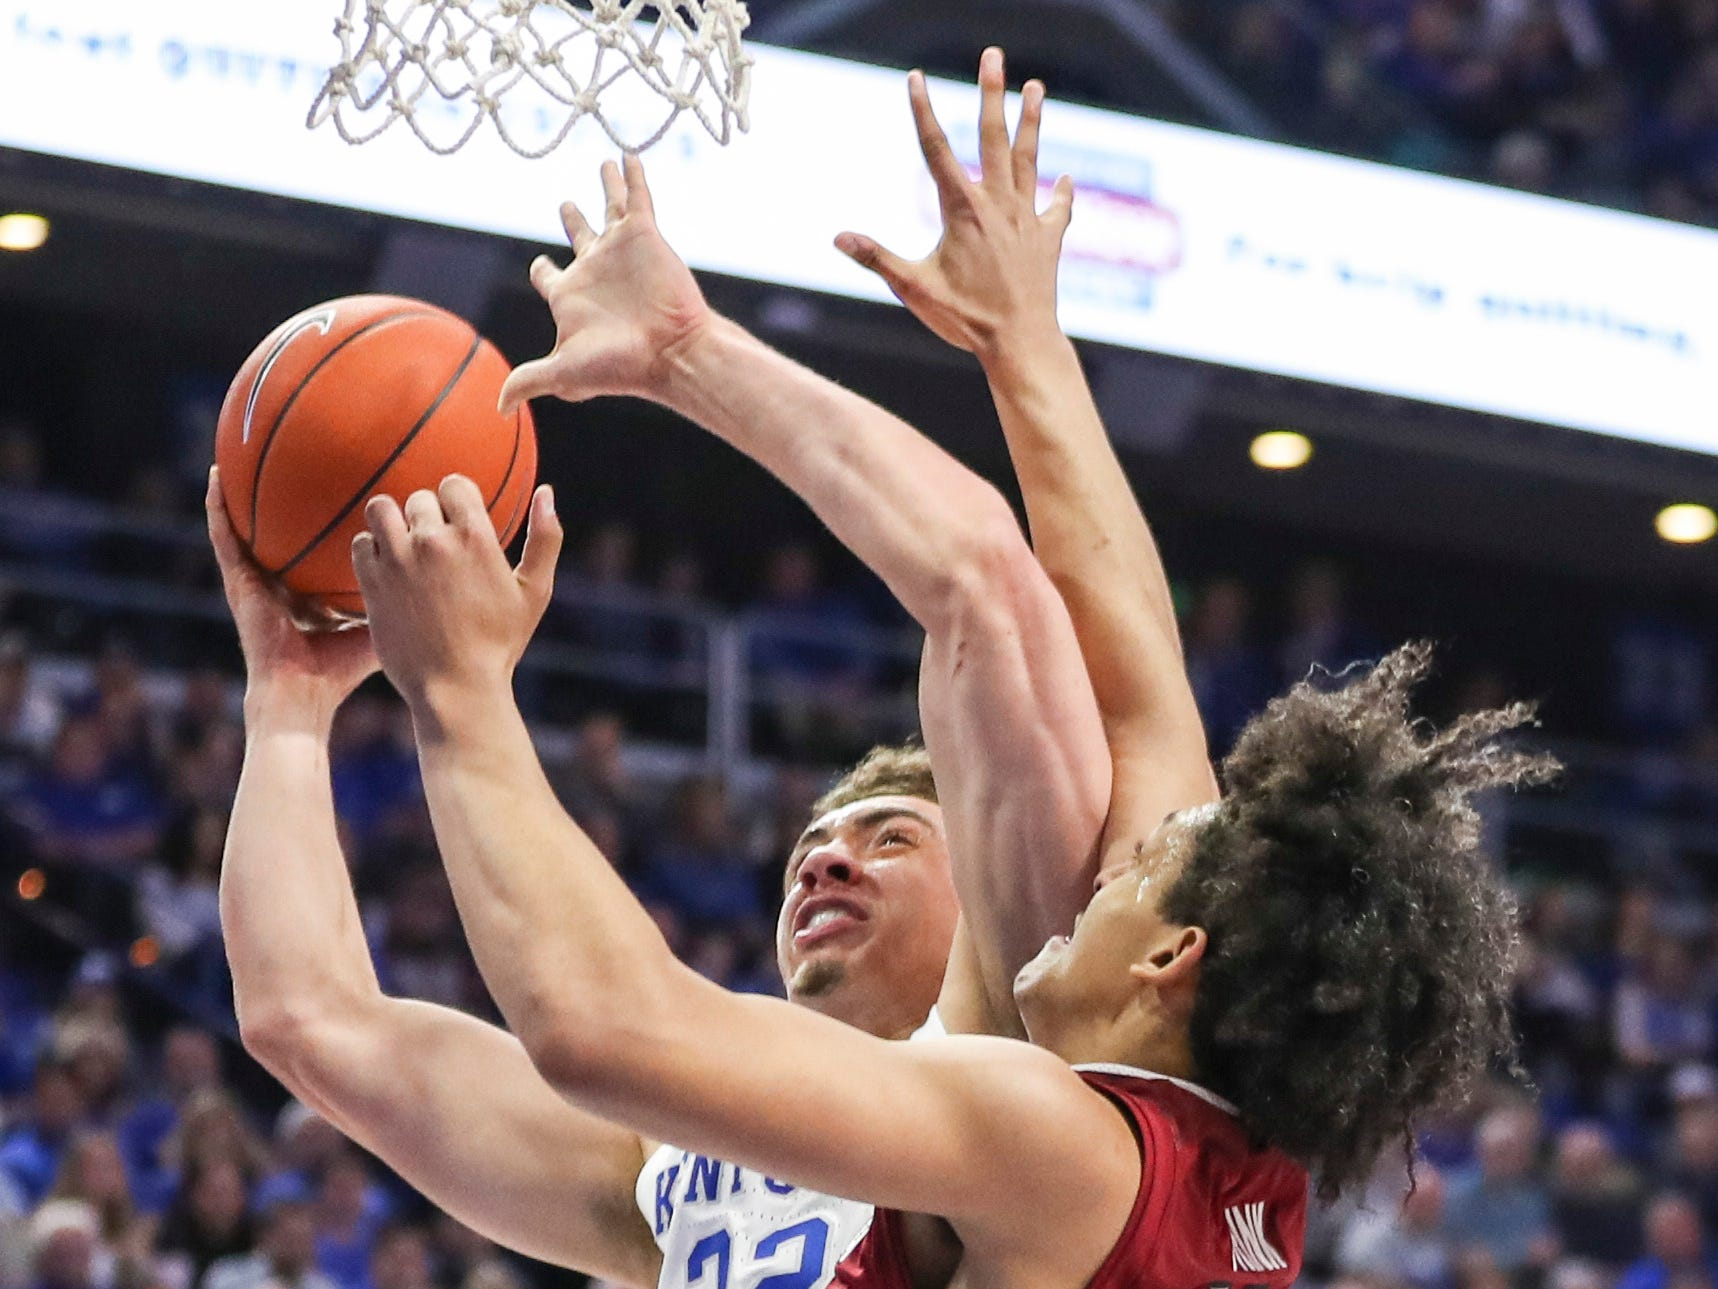 Kentucky's Reid Travis tries to score against South Carolina's Alanzo Frink in the first half Tuesday night at Rupp Arena. Feb. 5, 2019